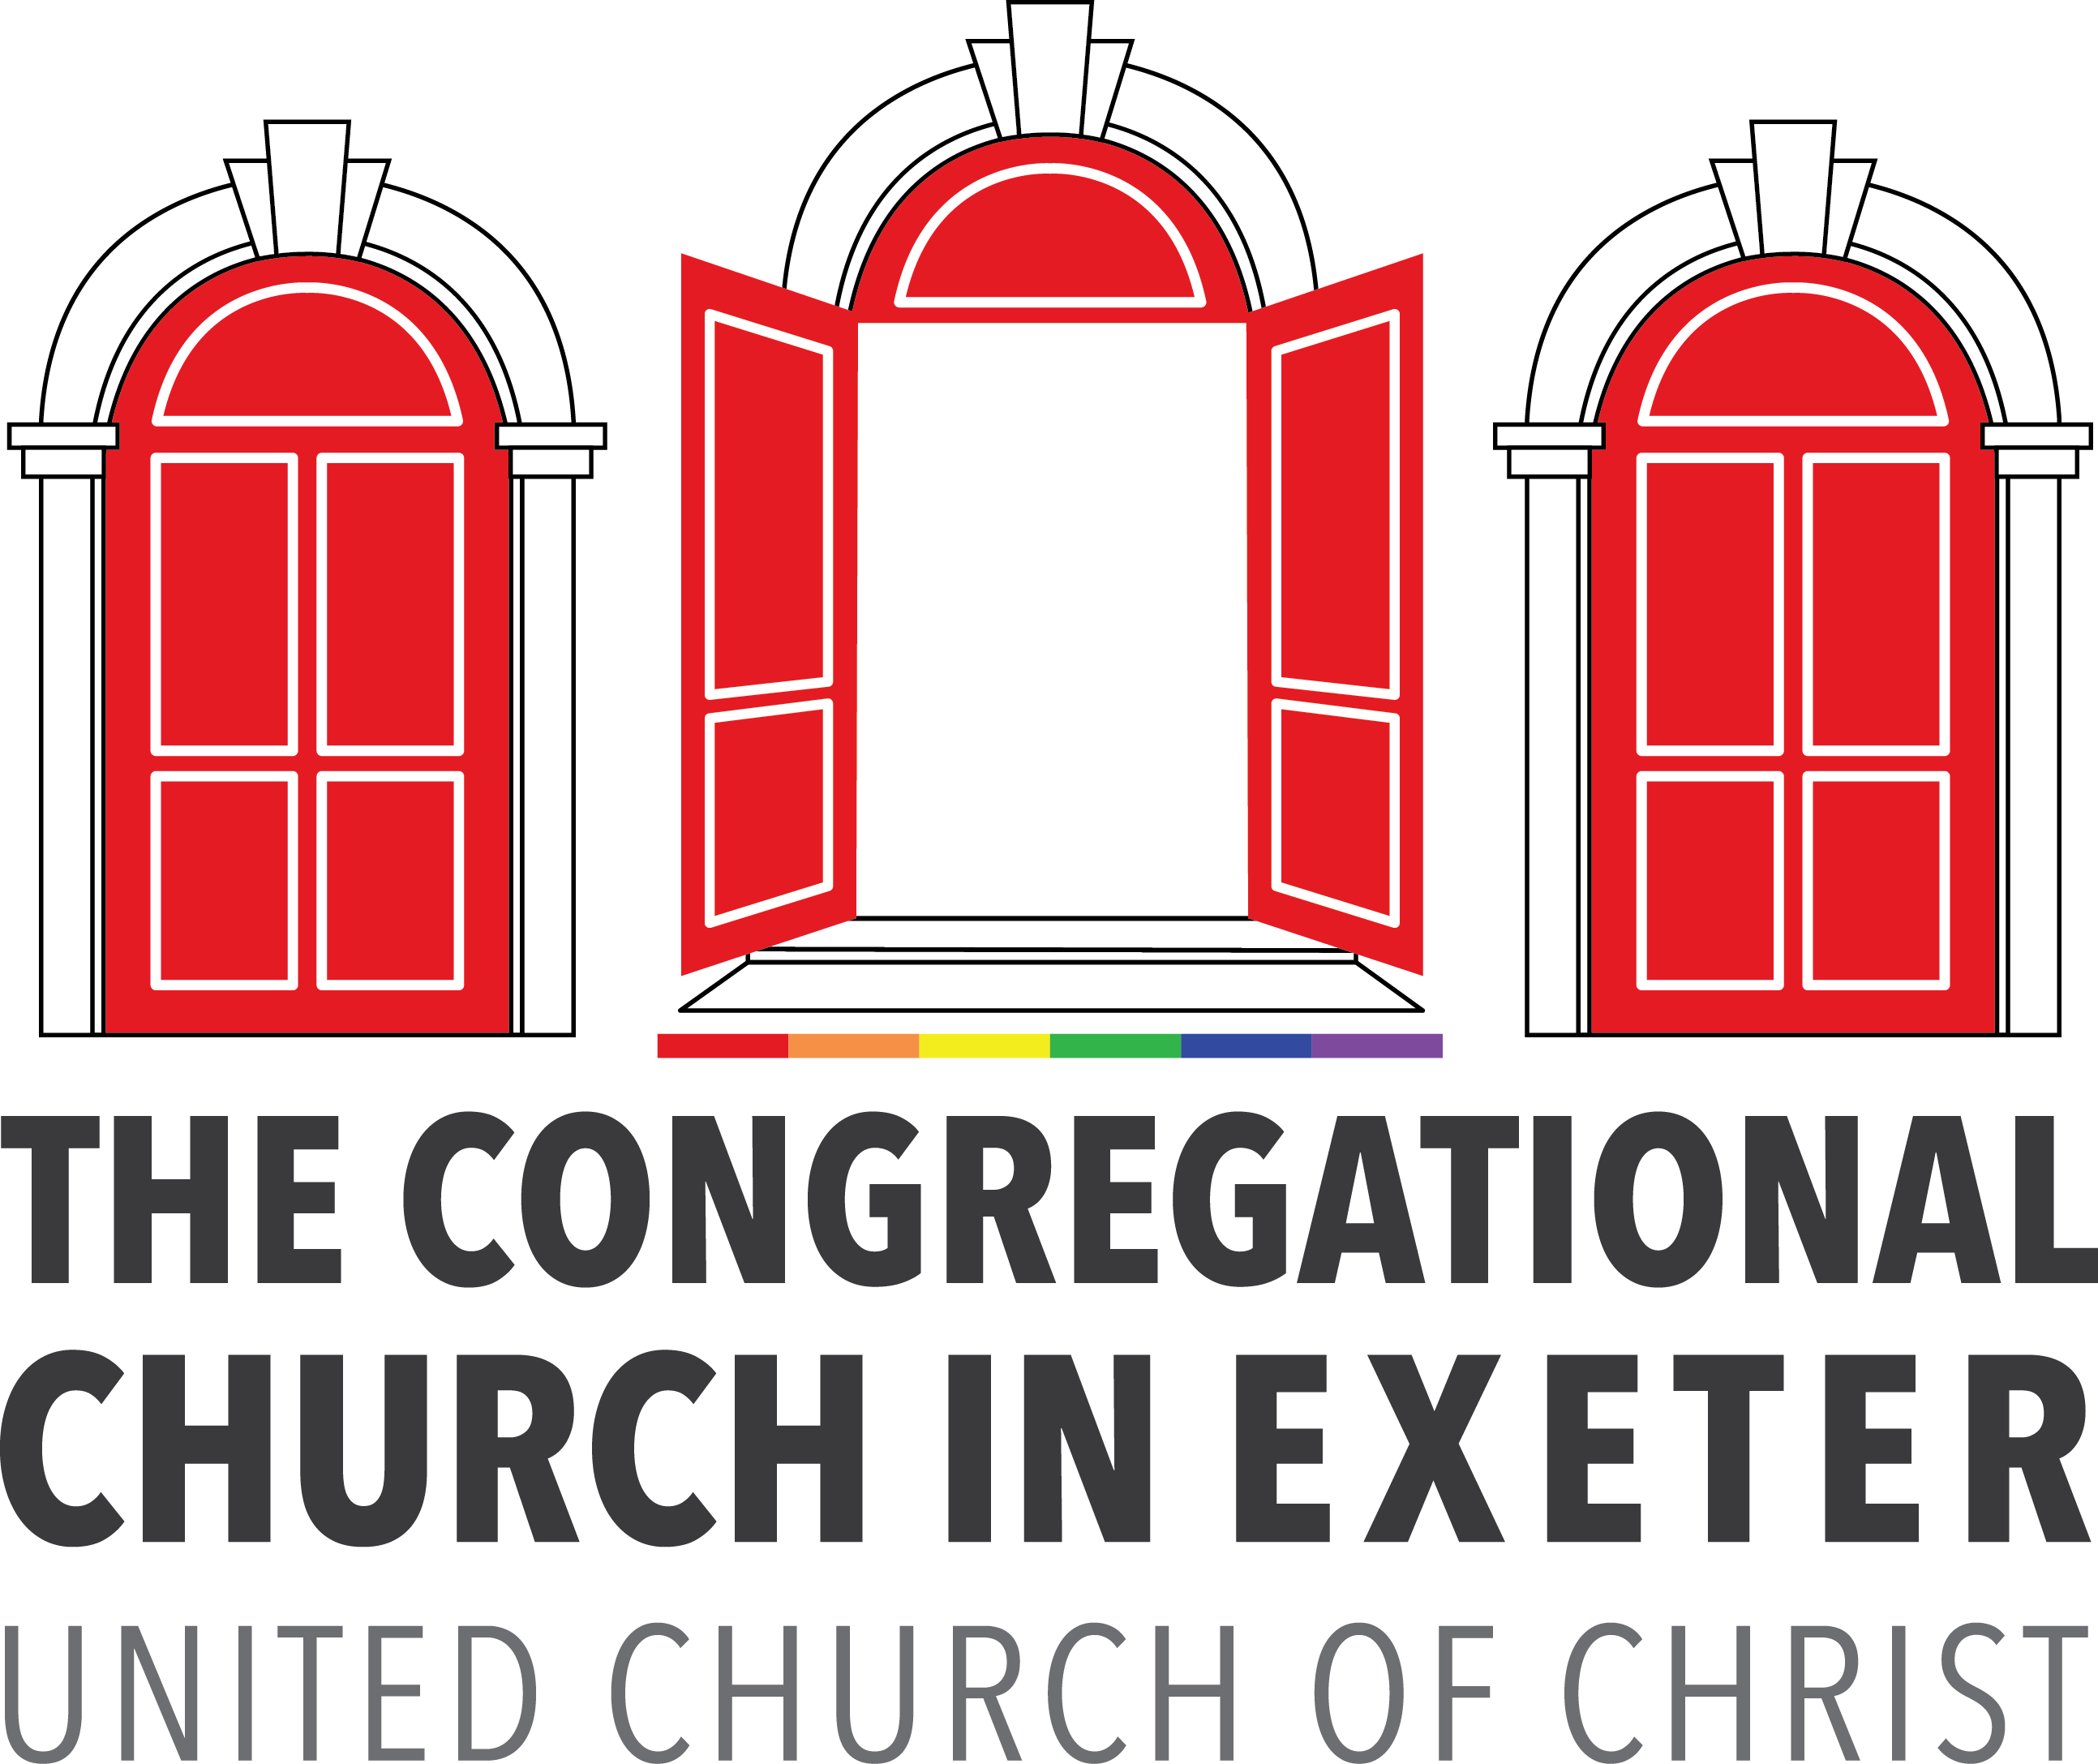 The Congregational Church in Exeter (UCC)